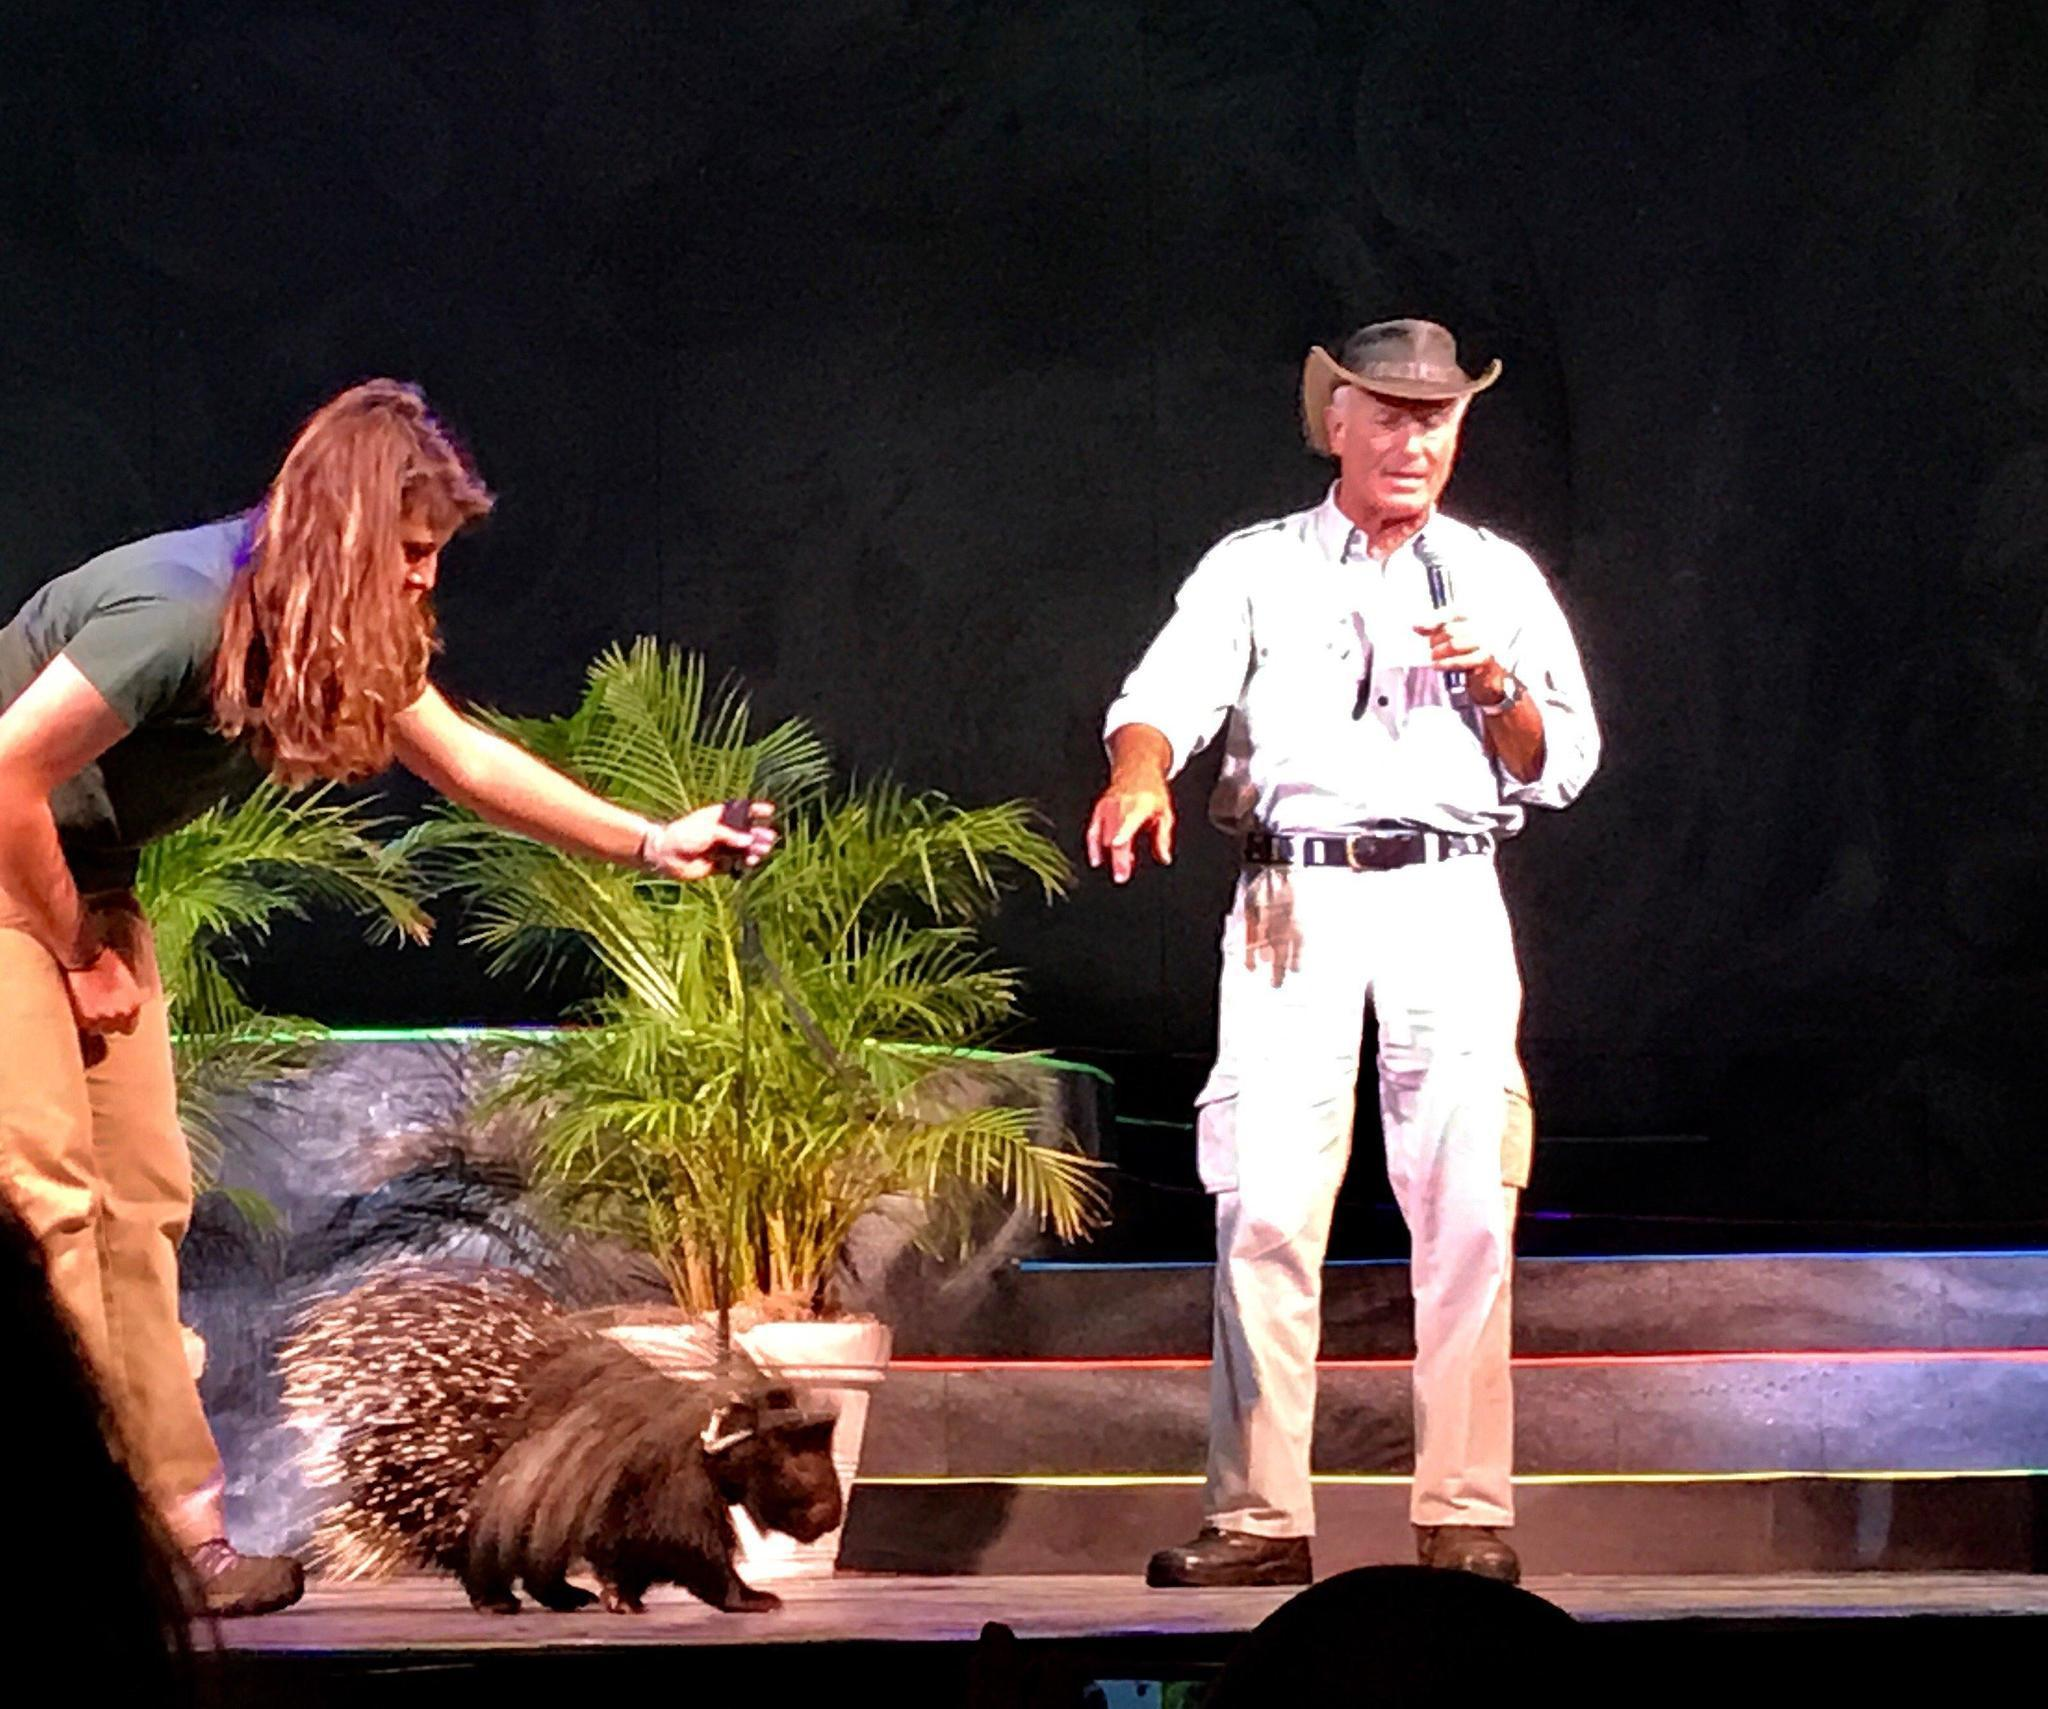 The Best Season To Get Married Based On Your Personality: Jack Hanna Delights At Busch Gardens Shows